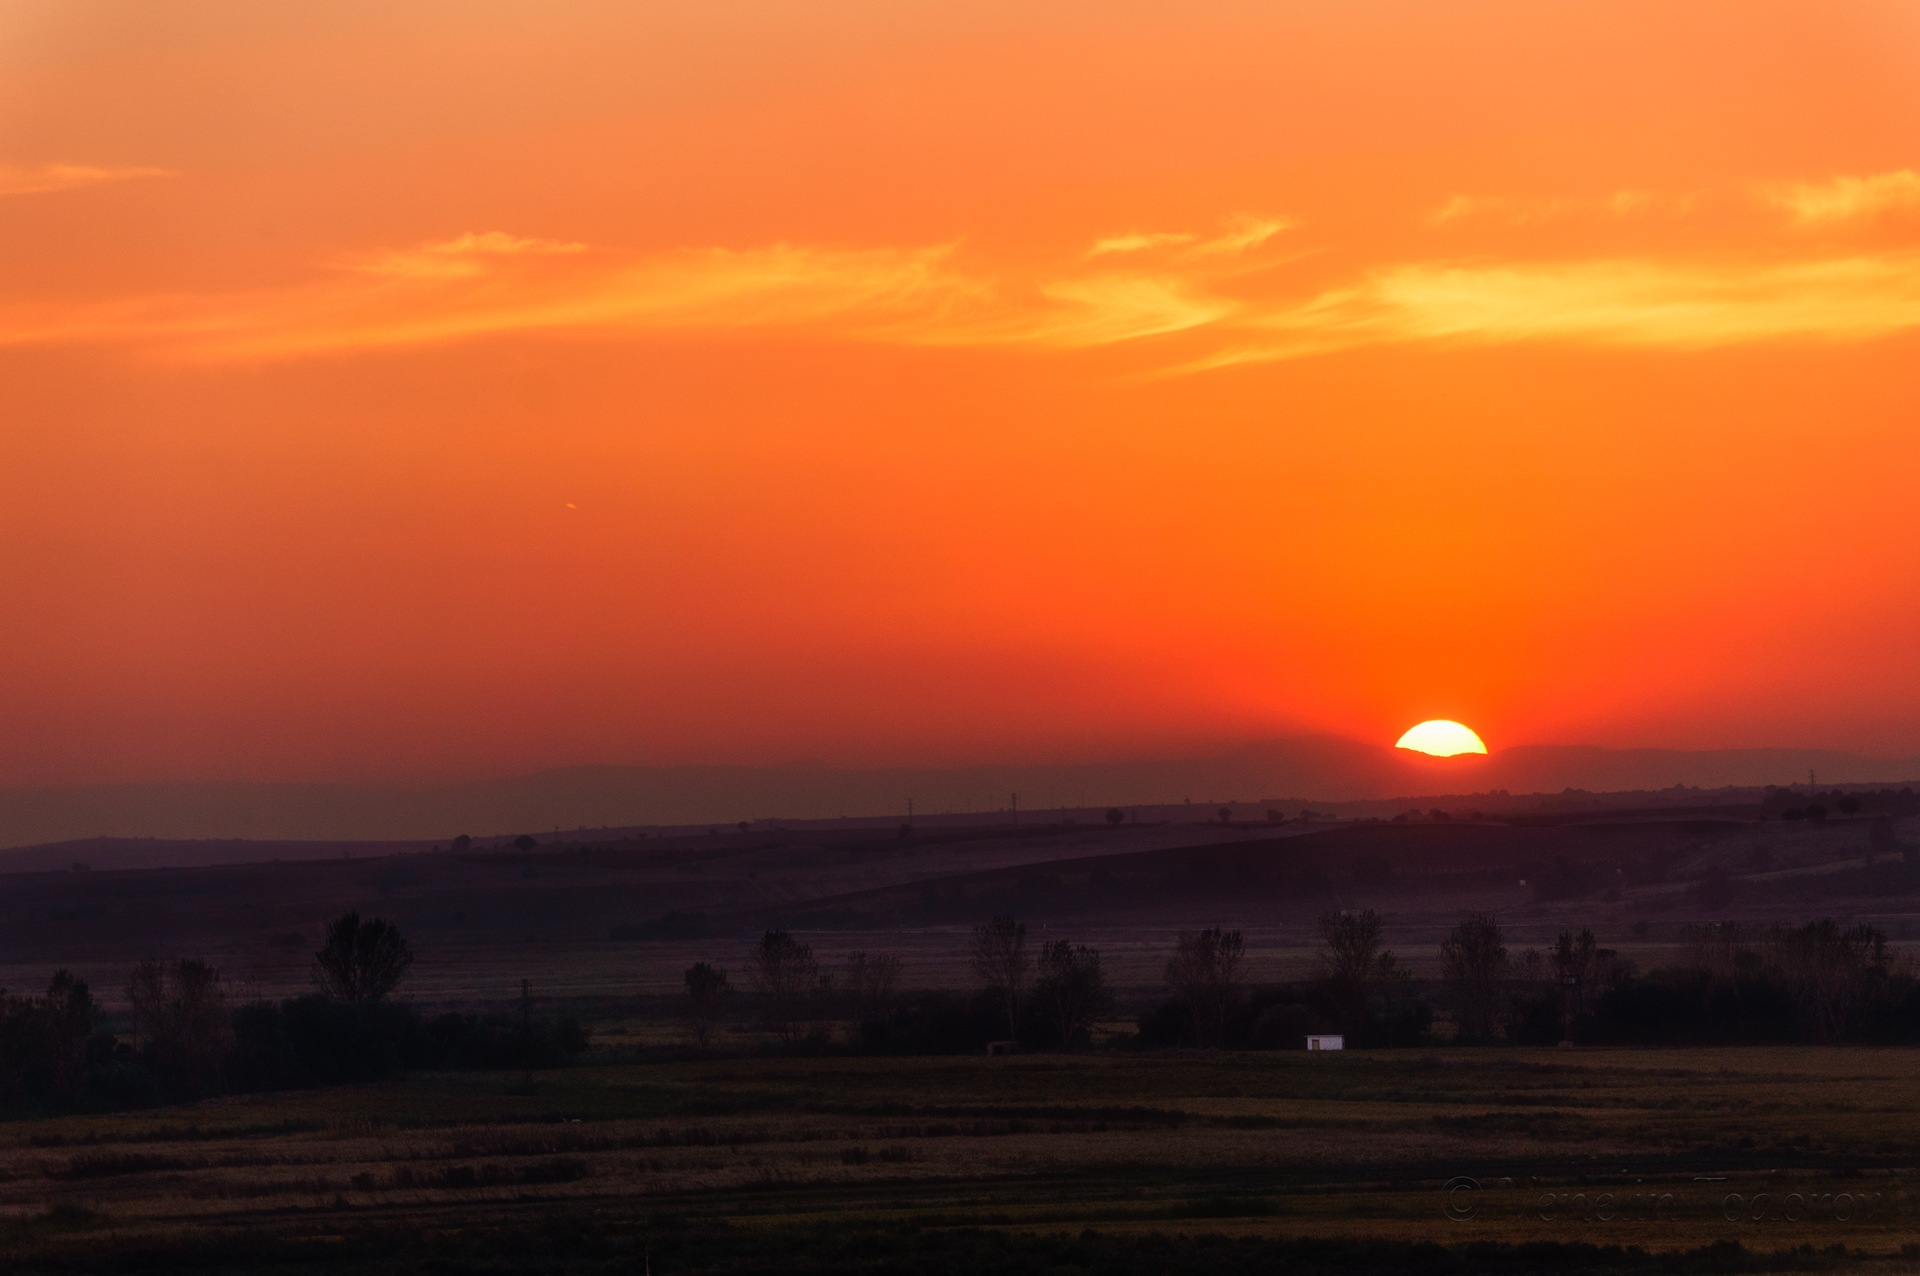 Sunset over the fields by Venelin Todorov